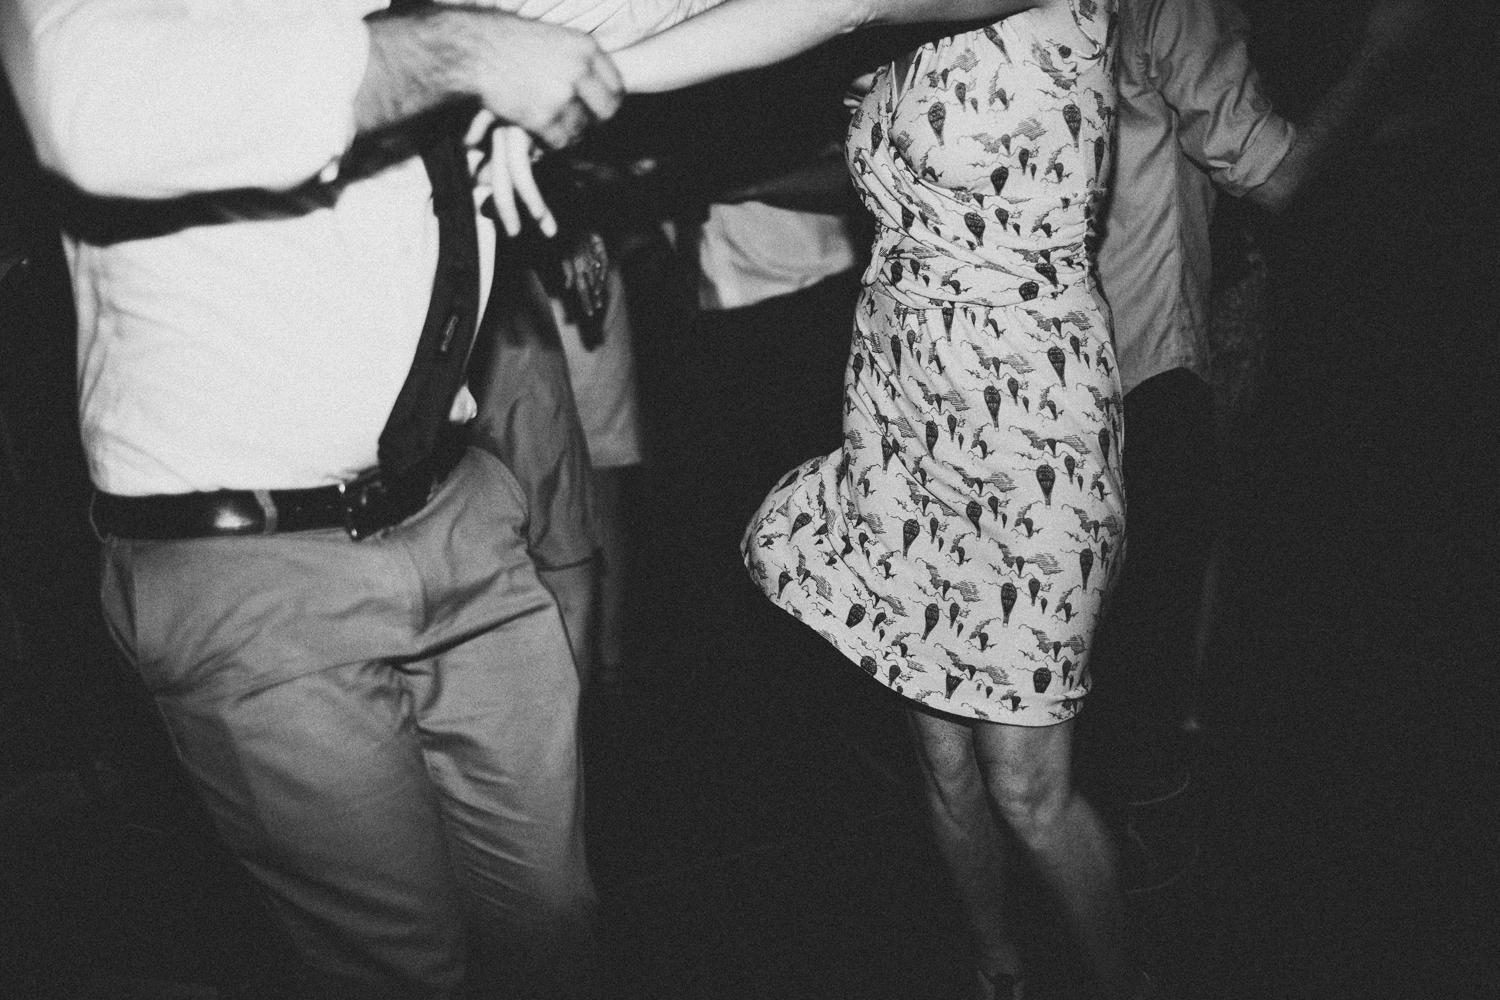 amber_byrne_mahoney_dancing_couple_photography.jpg